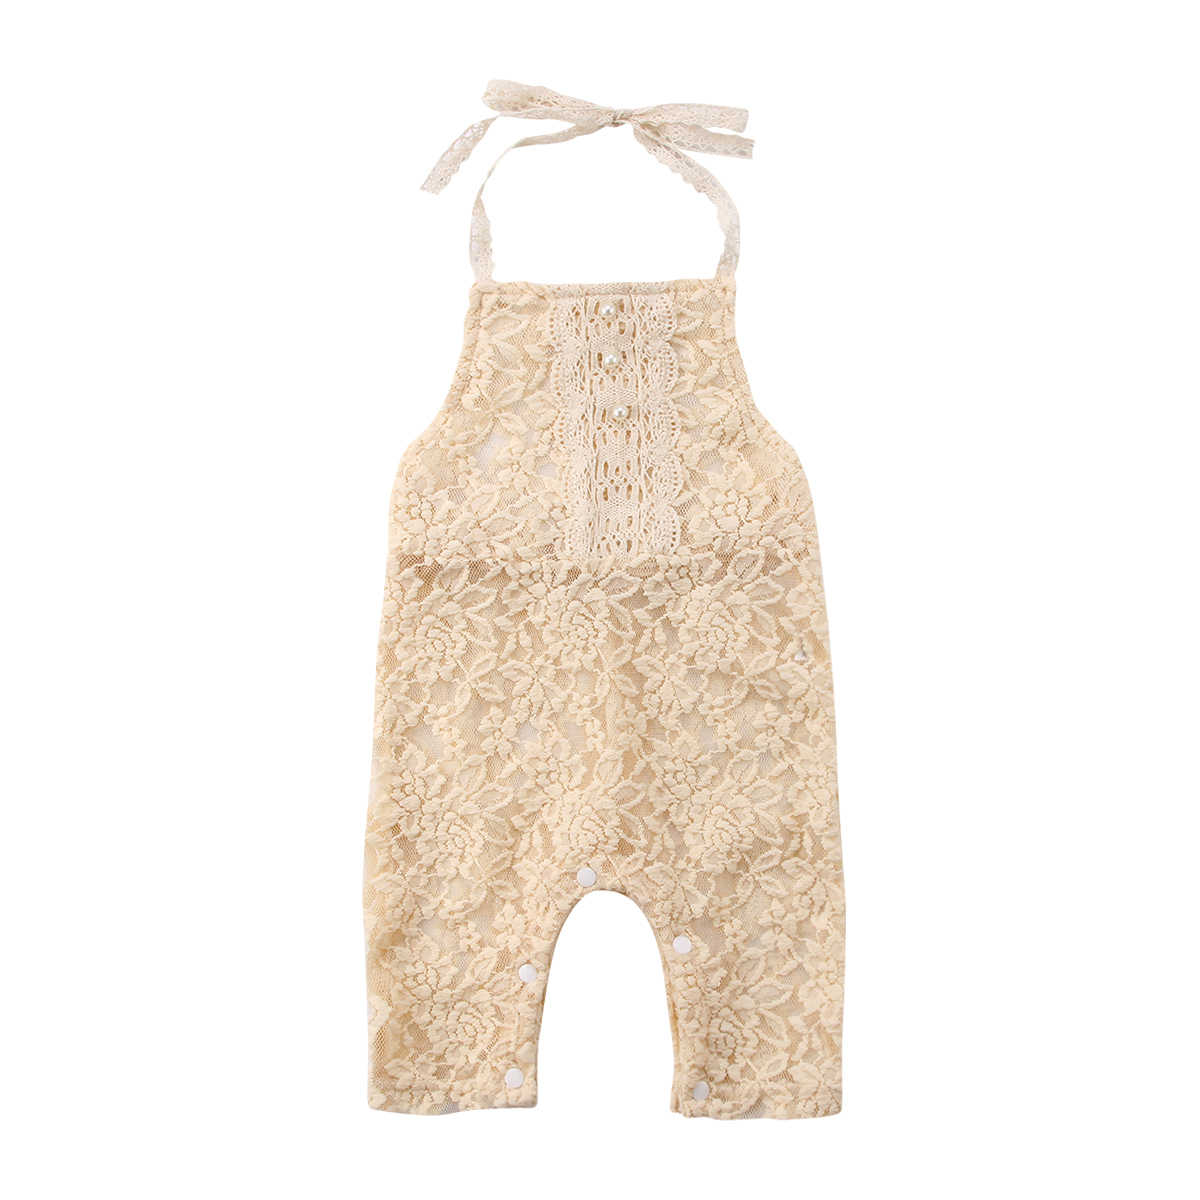 a36050f82 Detail Feedback Questions about Newborn Toddle Infant Baby Girls ...